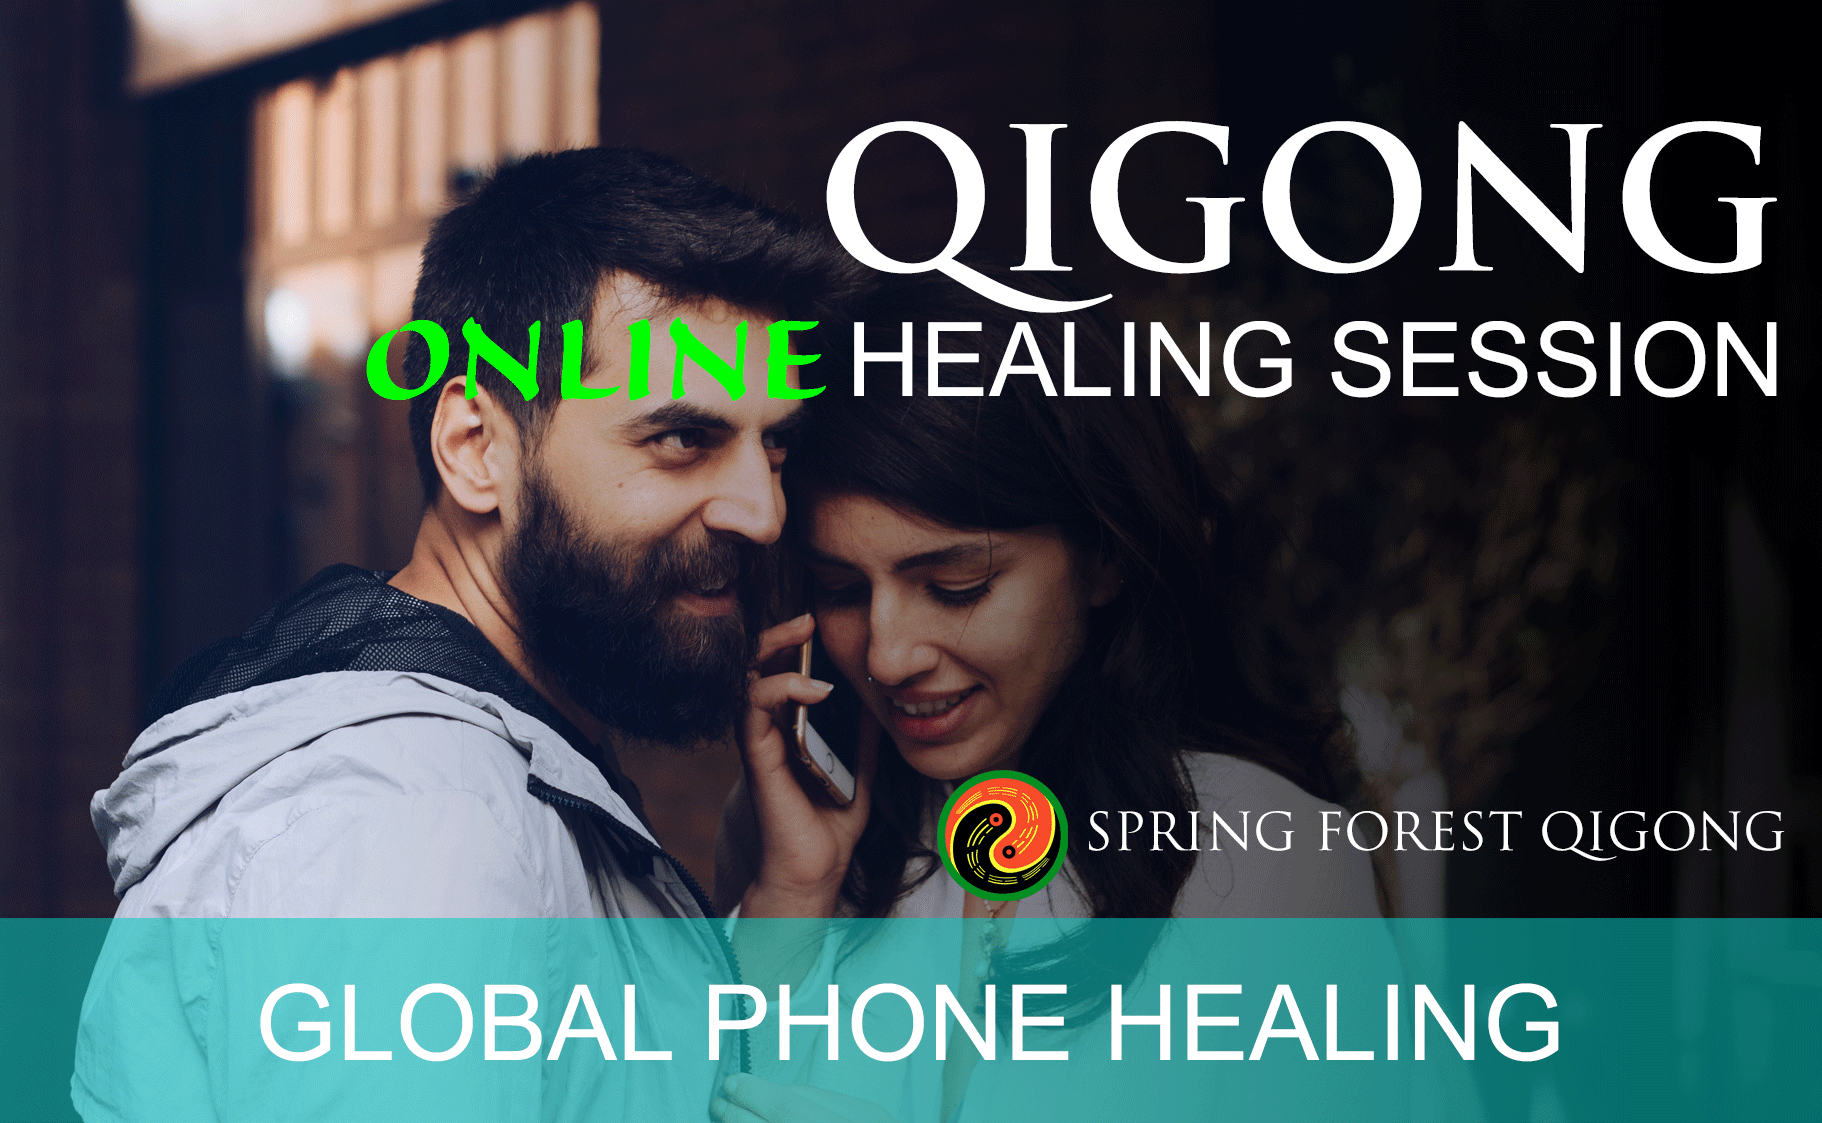 Spring Forest FREE Qigong Global Phone Healing